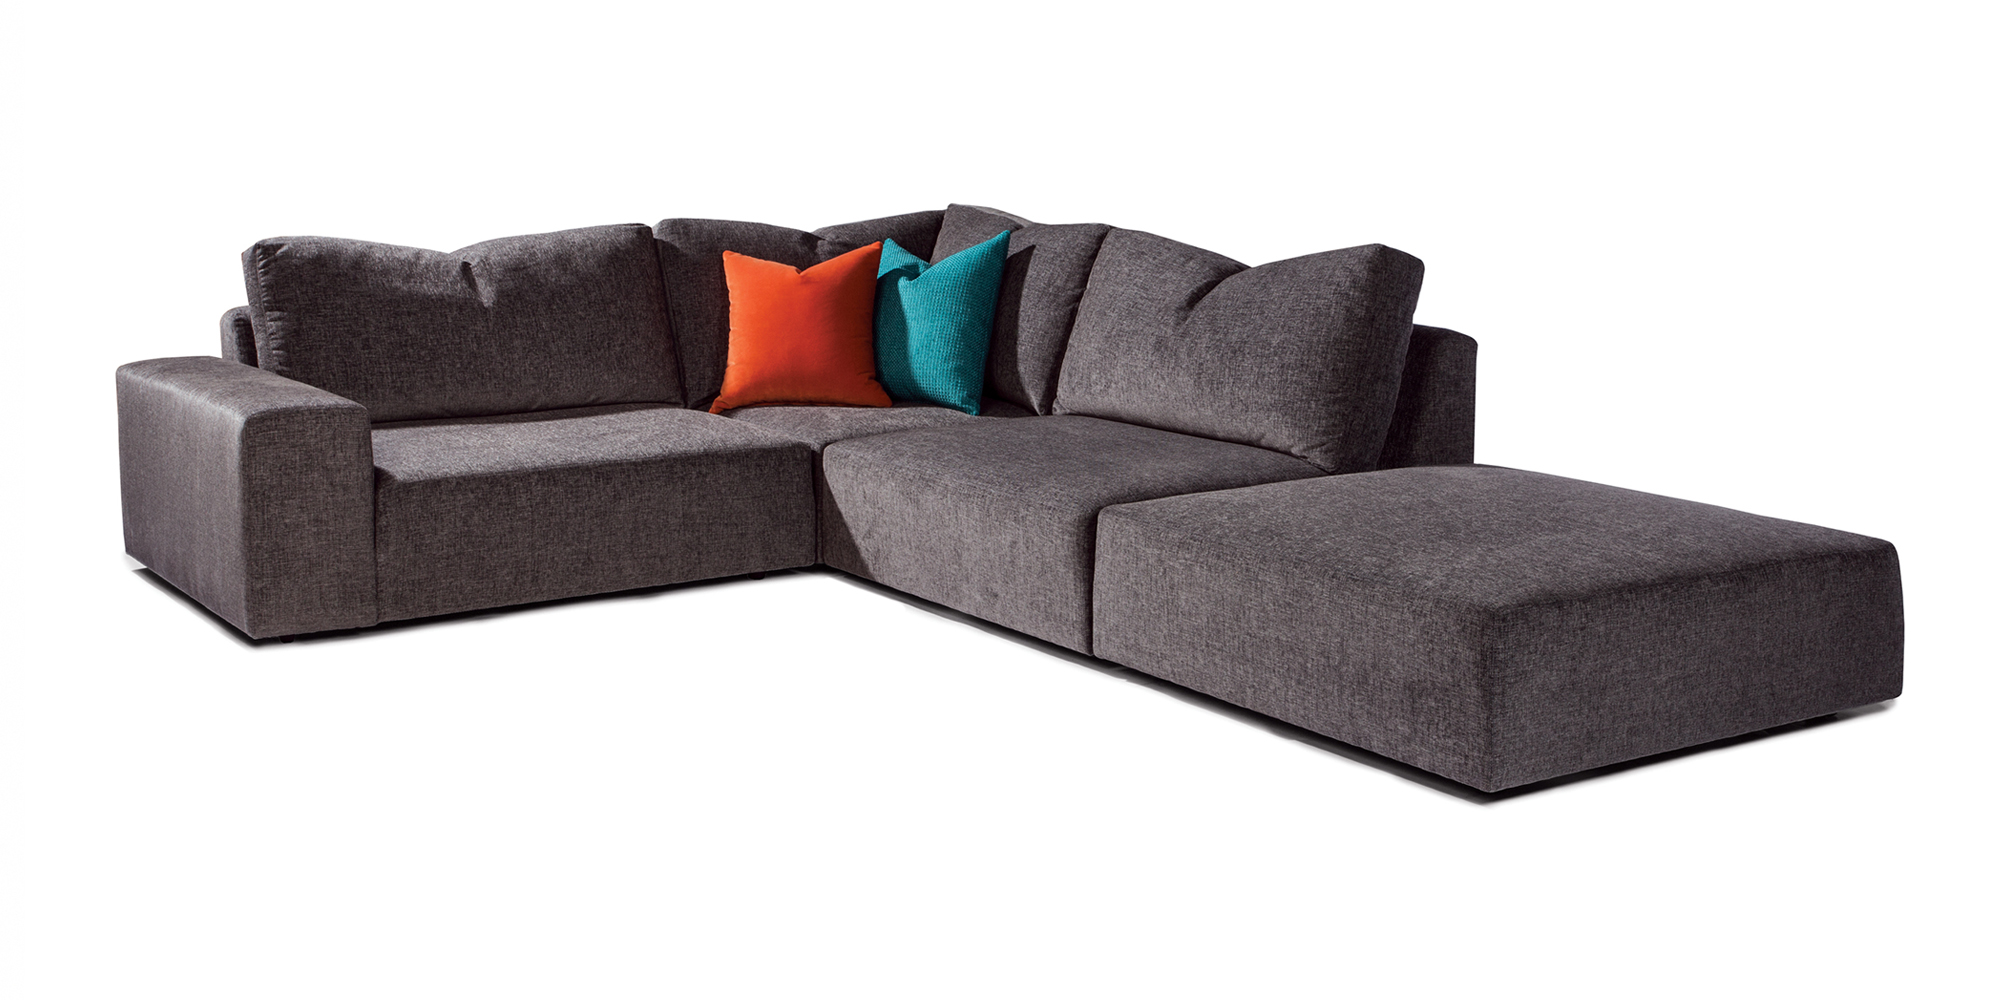 Thayer Coggin Sectional Gallery